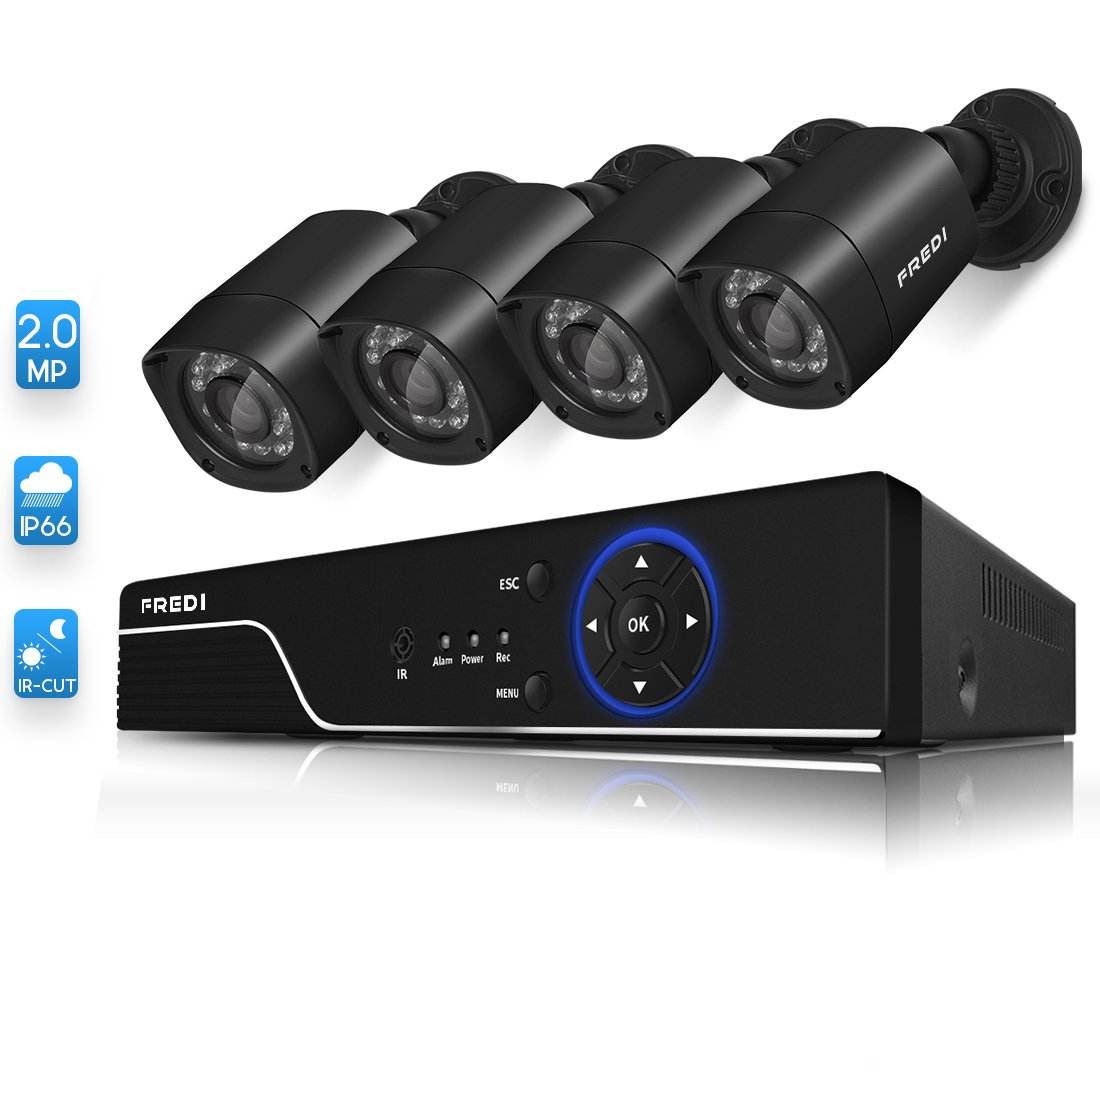 FREDI Security Camera System 8-Channel HD-TVI 1080P Lite Video Security System DVR and (4) 1.0MP Indoor/Outdoor Weatherproof Cameras with IR Night Vision LEDs- Without HDD by FREDI (Image #2)